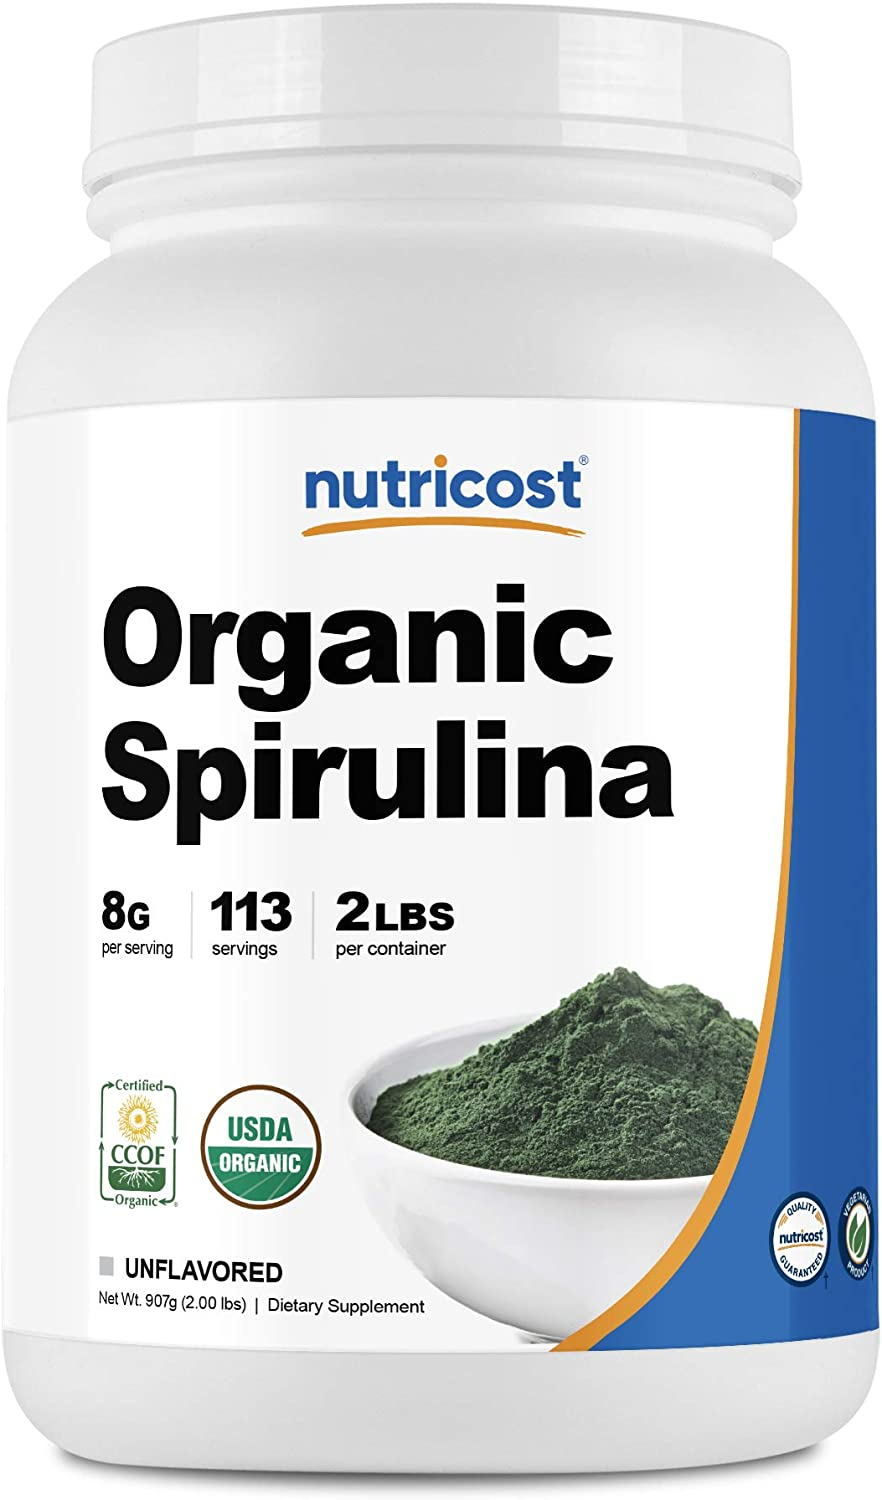 Nutricost Organic Spirulina Powder 2 Pounds - Pure, Certified Organic Spirulina: Health & Personal Care